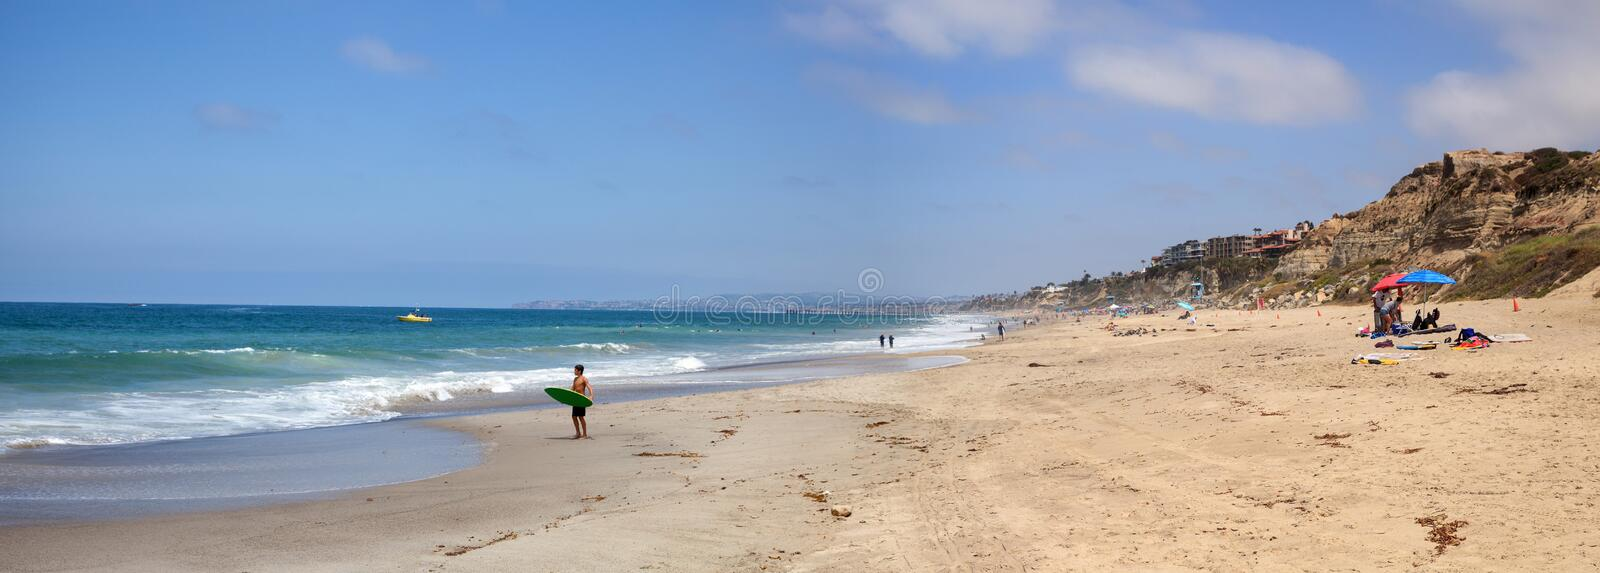 Summer at the San Clemente State Beach royalty free stock photos